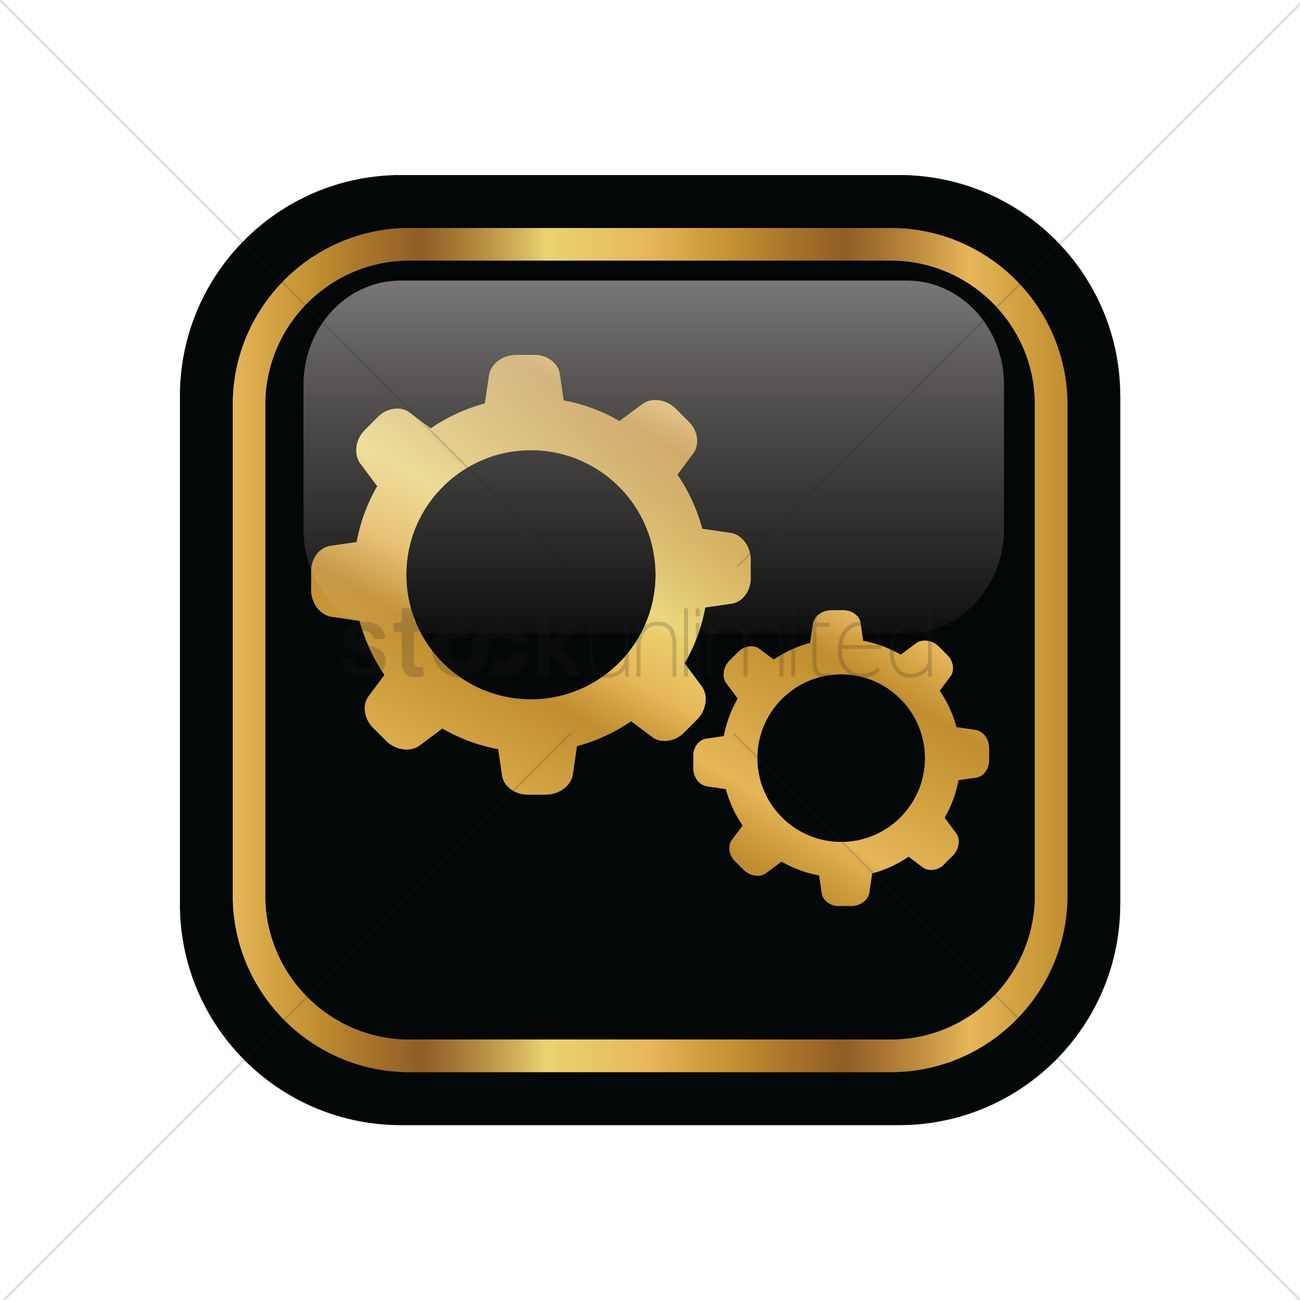 Settings icon Vector Image - 1949902 | StockUnlimited